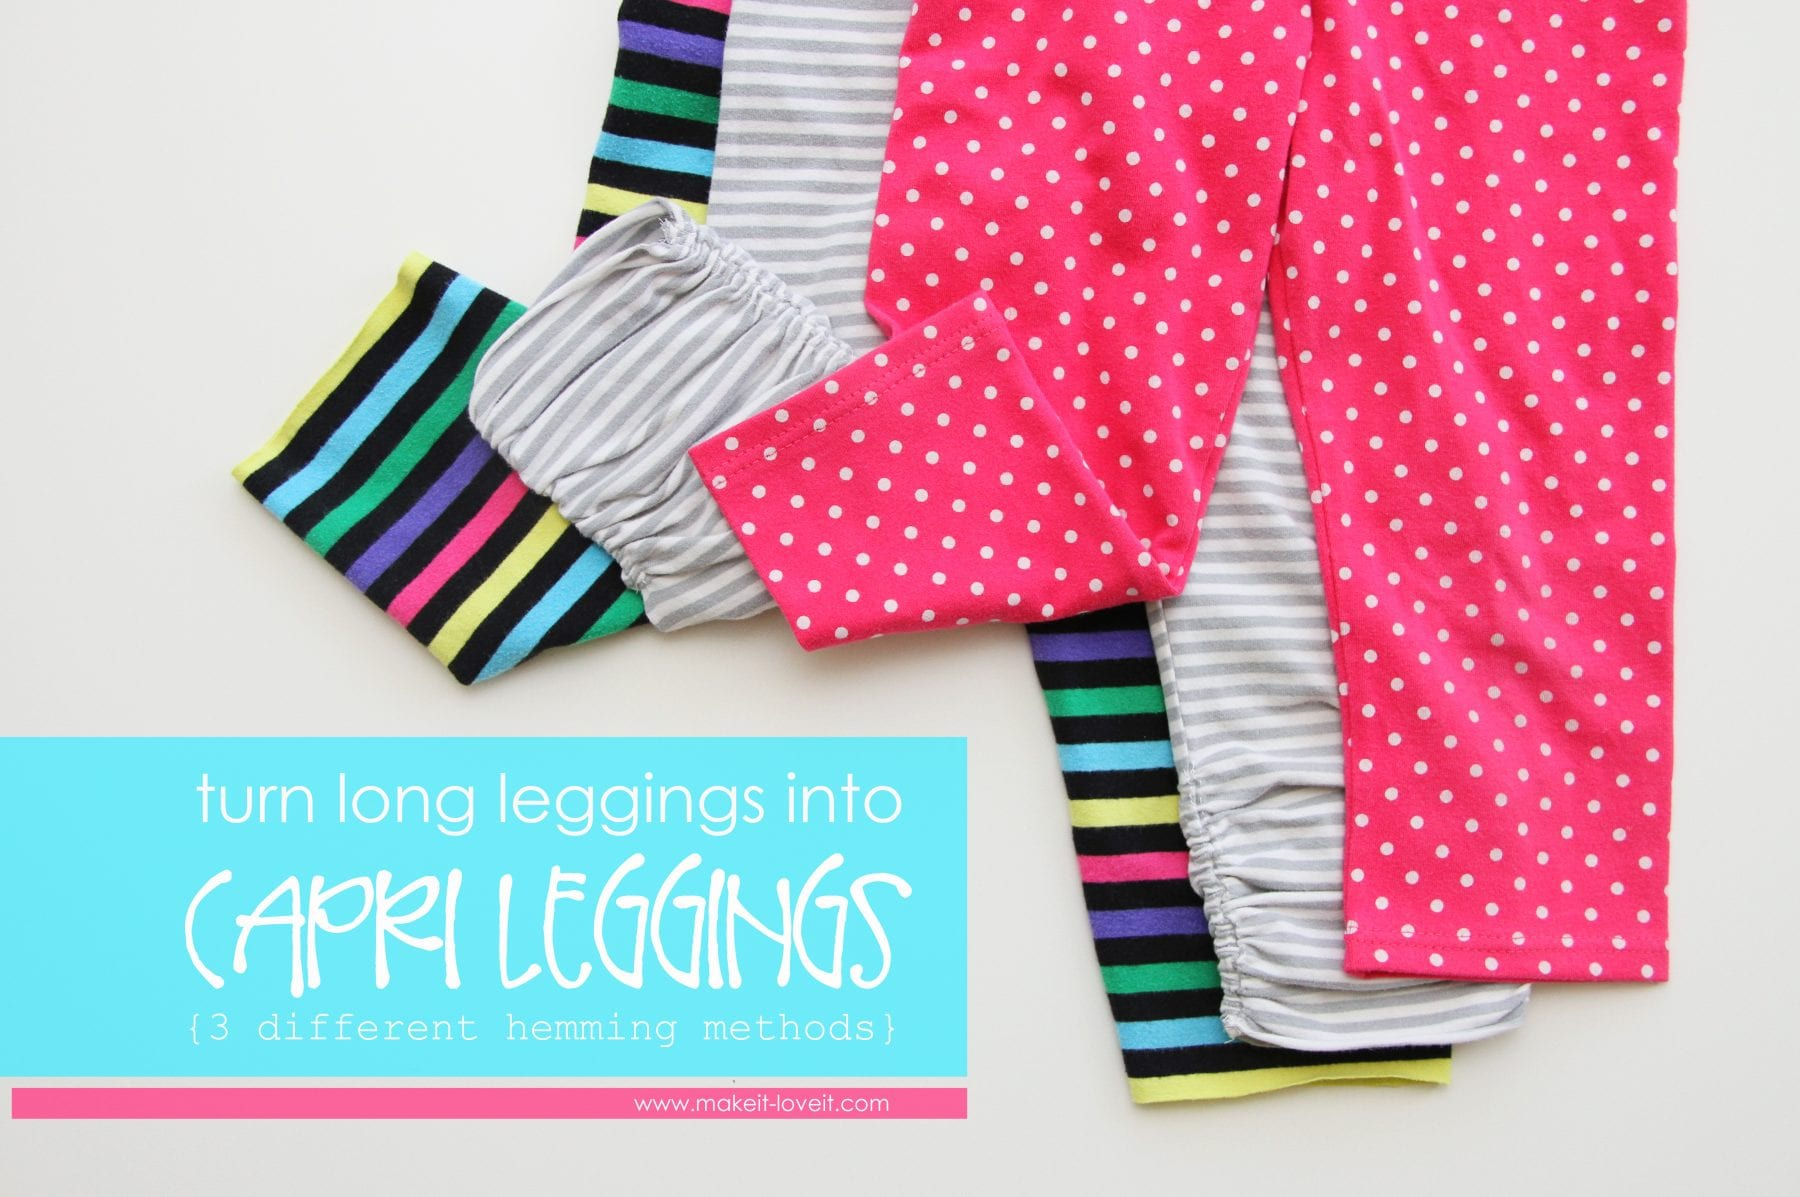 Turn leggings into capris {3 different methods}